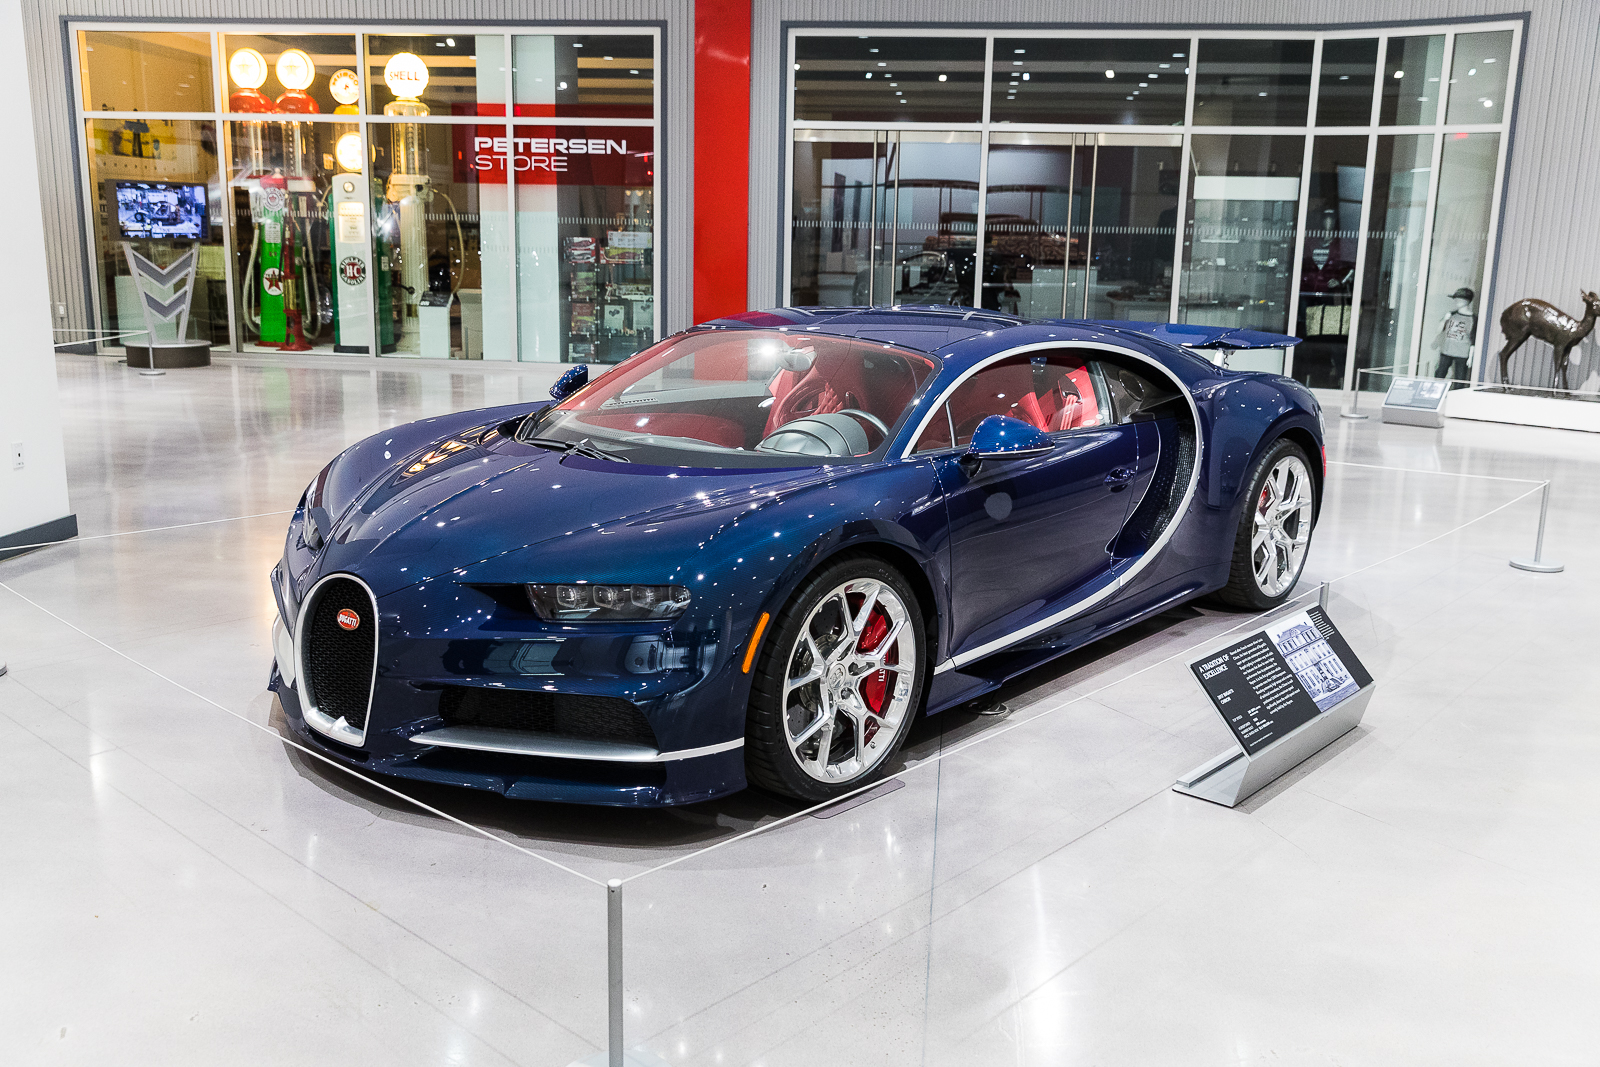 The workshop was conducted at the Petersen Auto Museum in Los Angeles. Prominently on display in the lobby is a $2.6 million Bugatti Chiron.